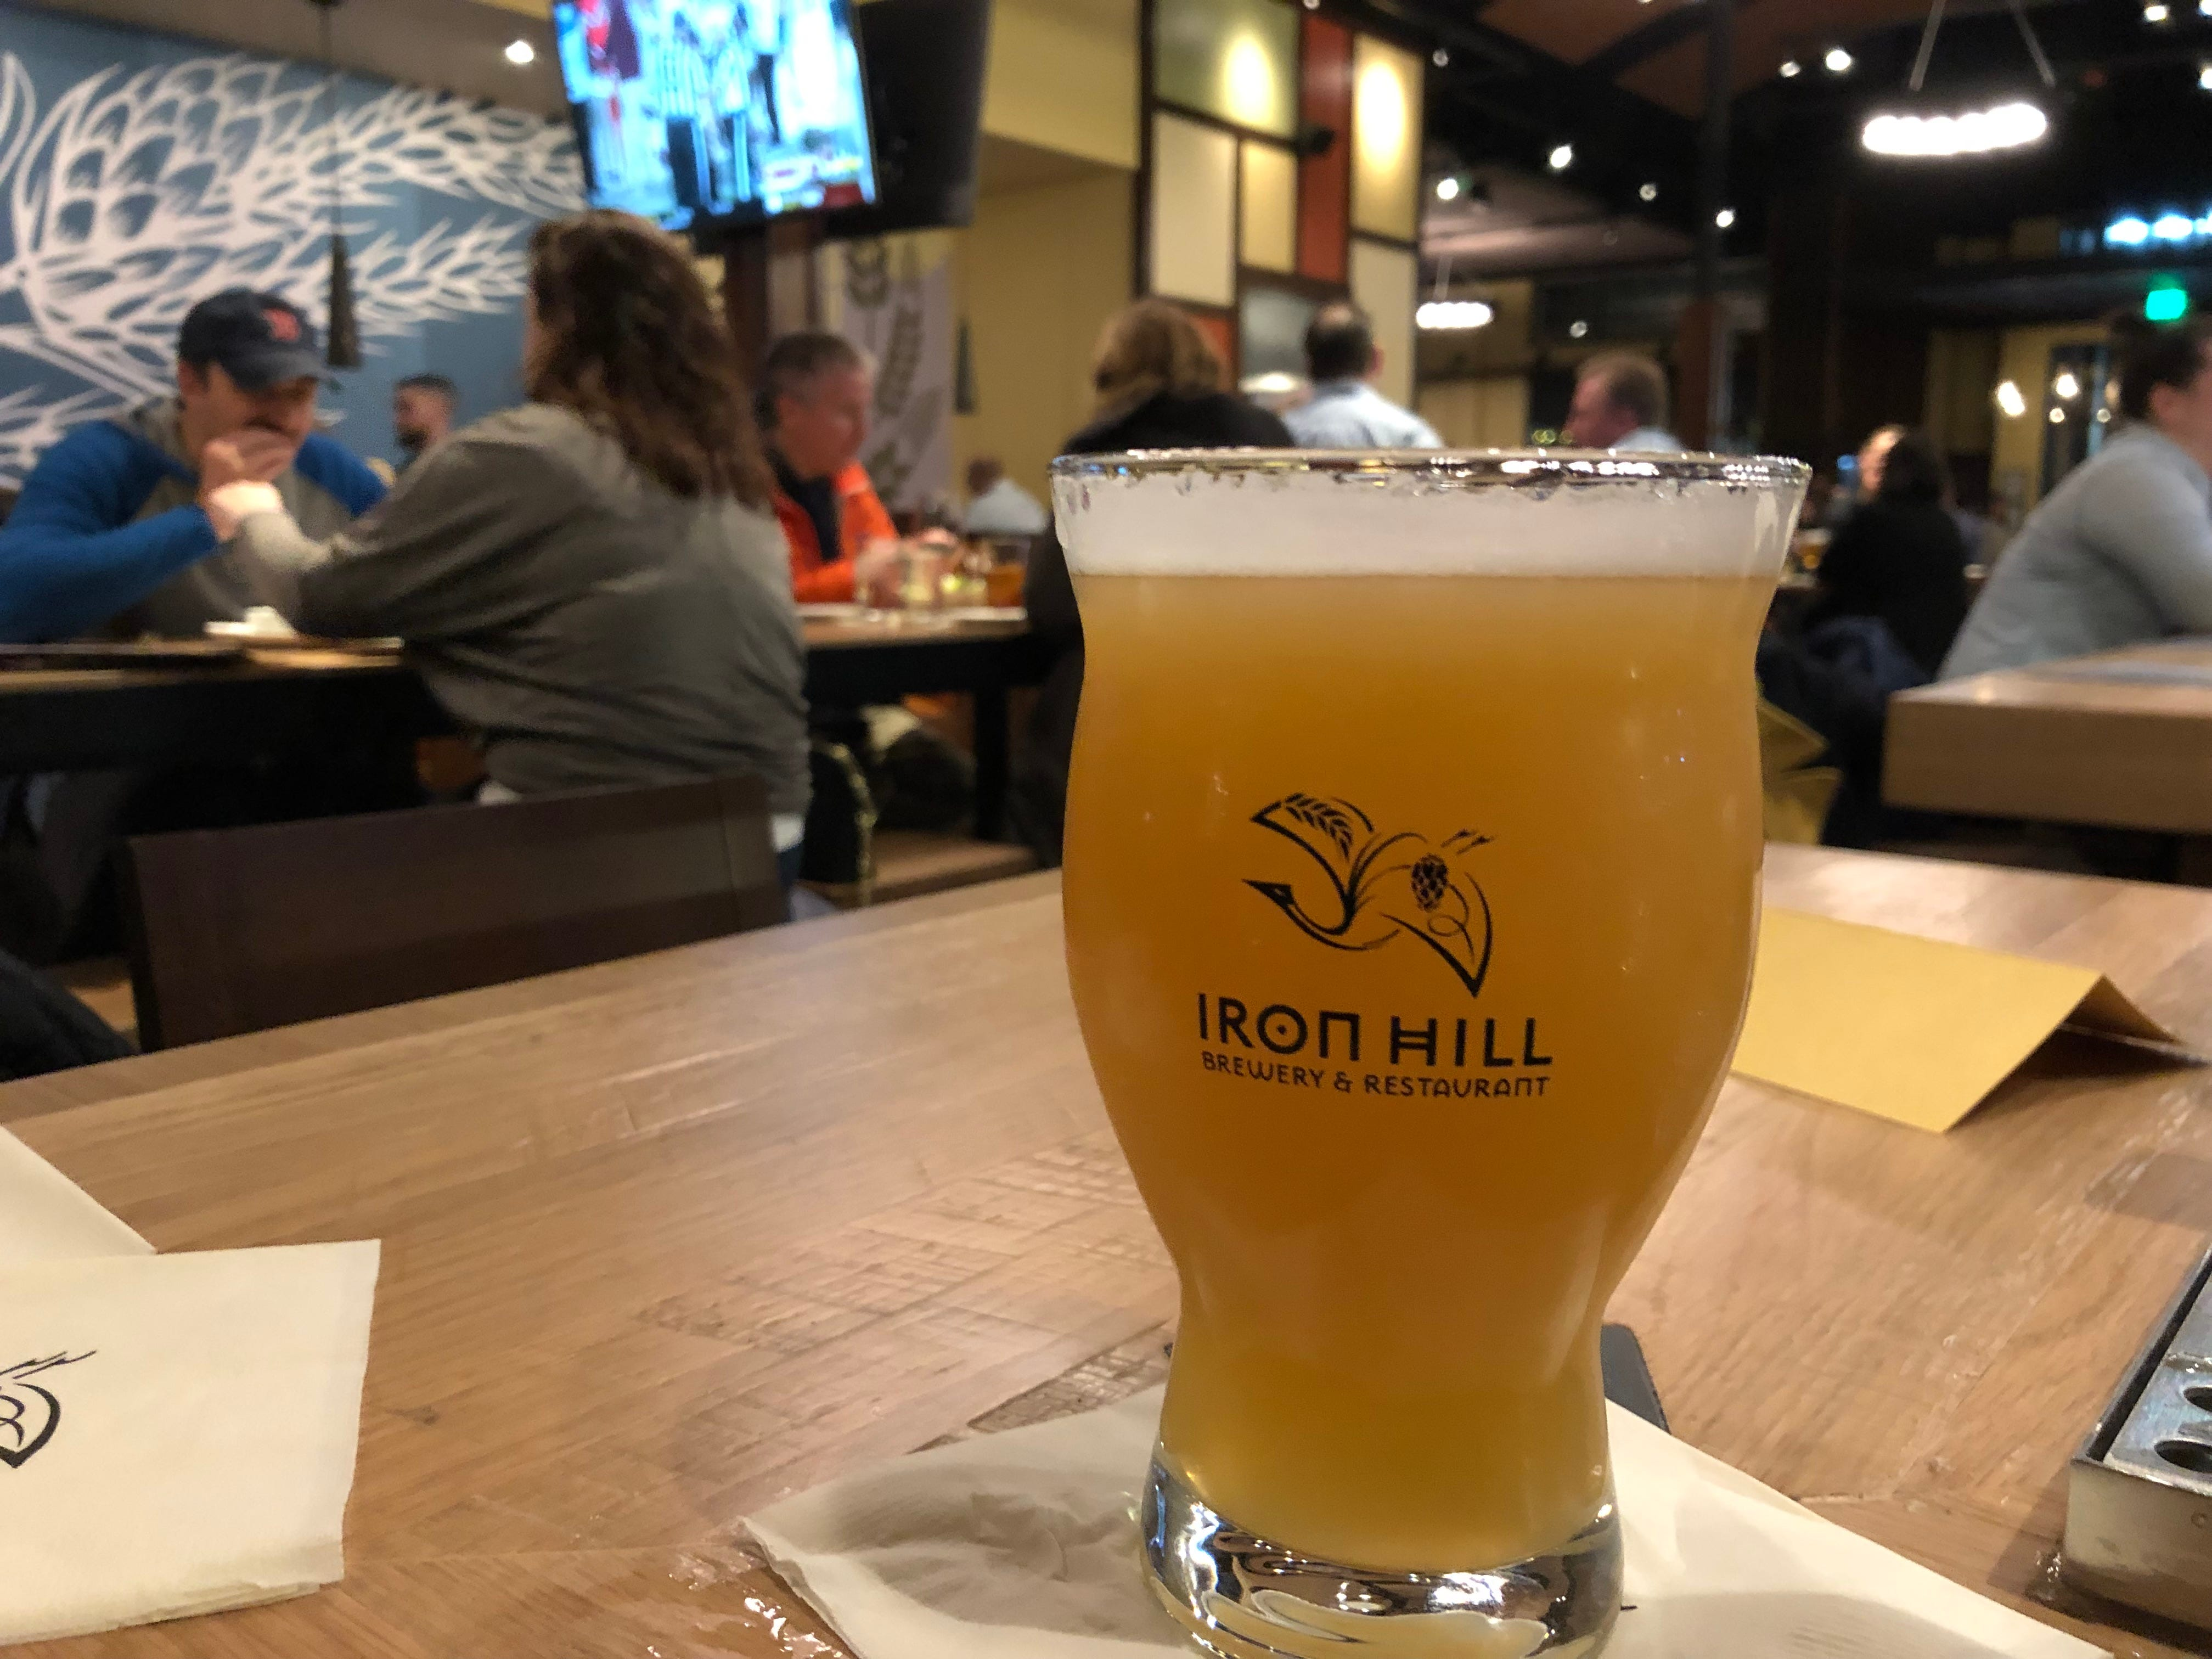 A delicious pint of Juicebox, a New England IPA, currently available at Iron Hill Brewery & Restaurant.